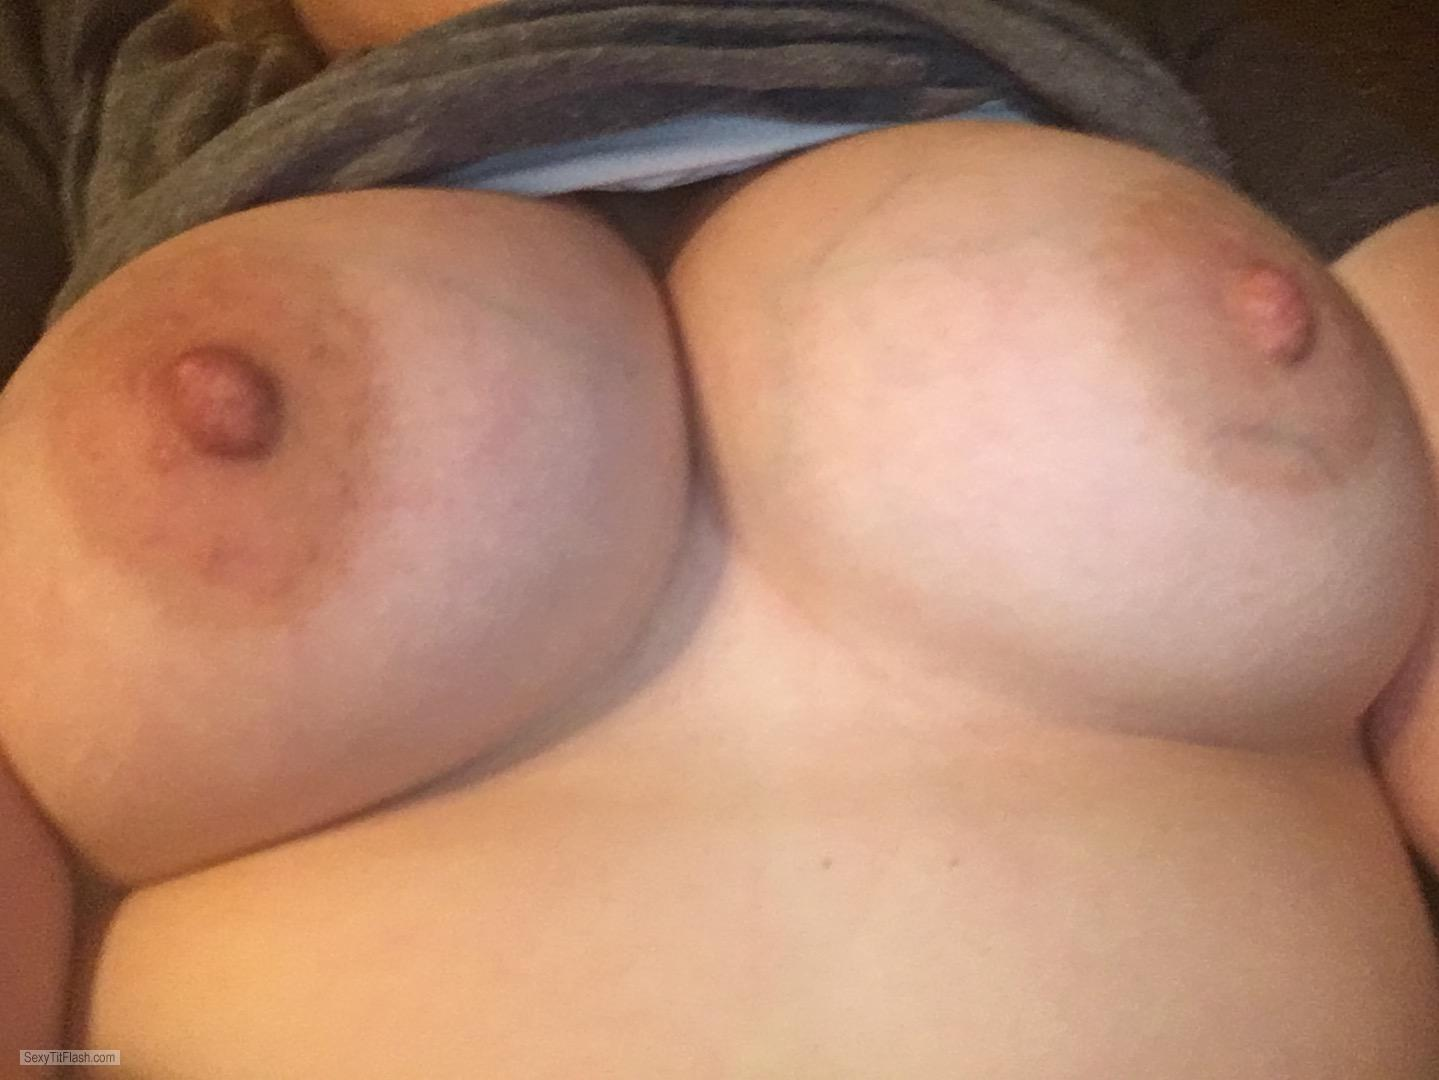 My Very small Tits Topless Jj